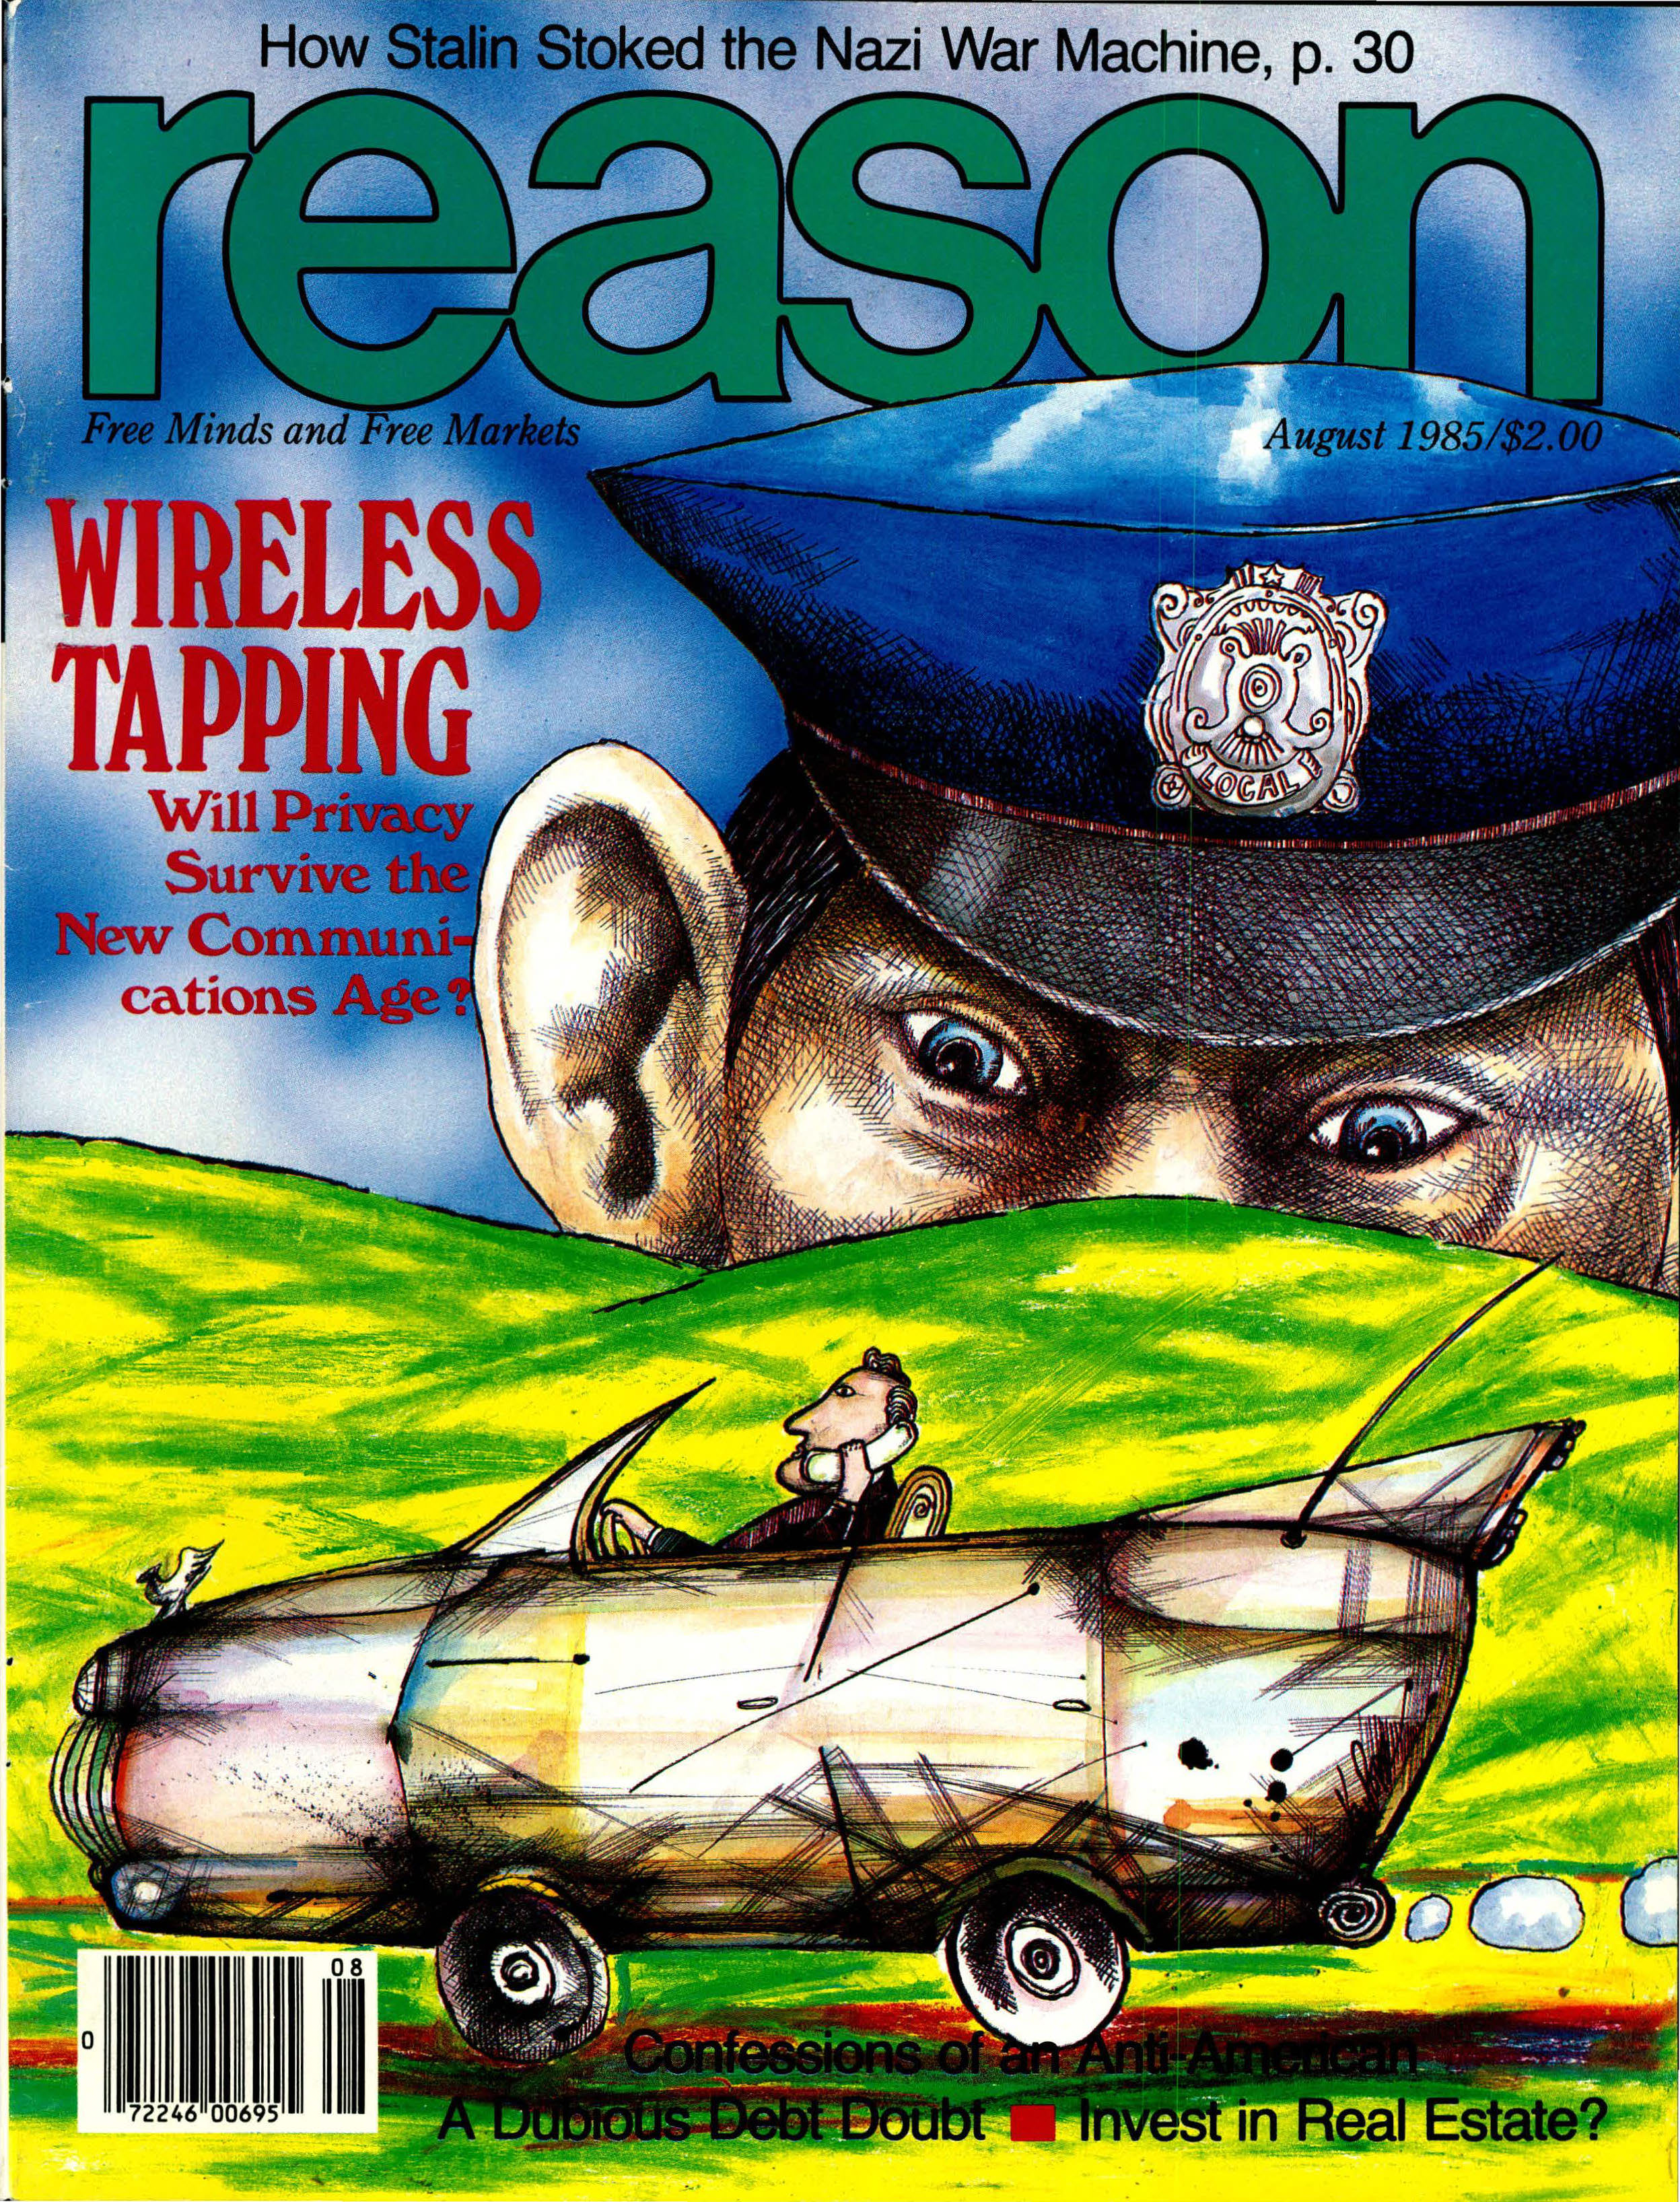 Reason Magazine, August 1985 cover image